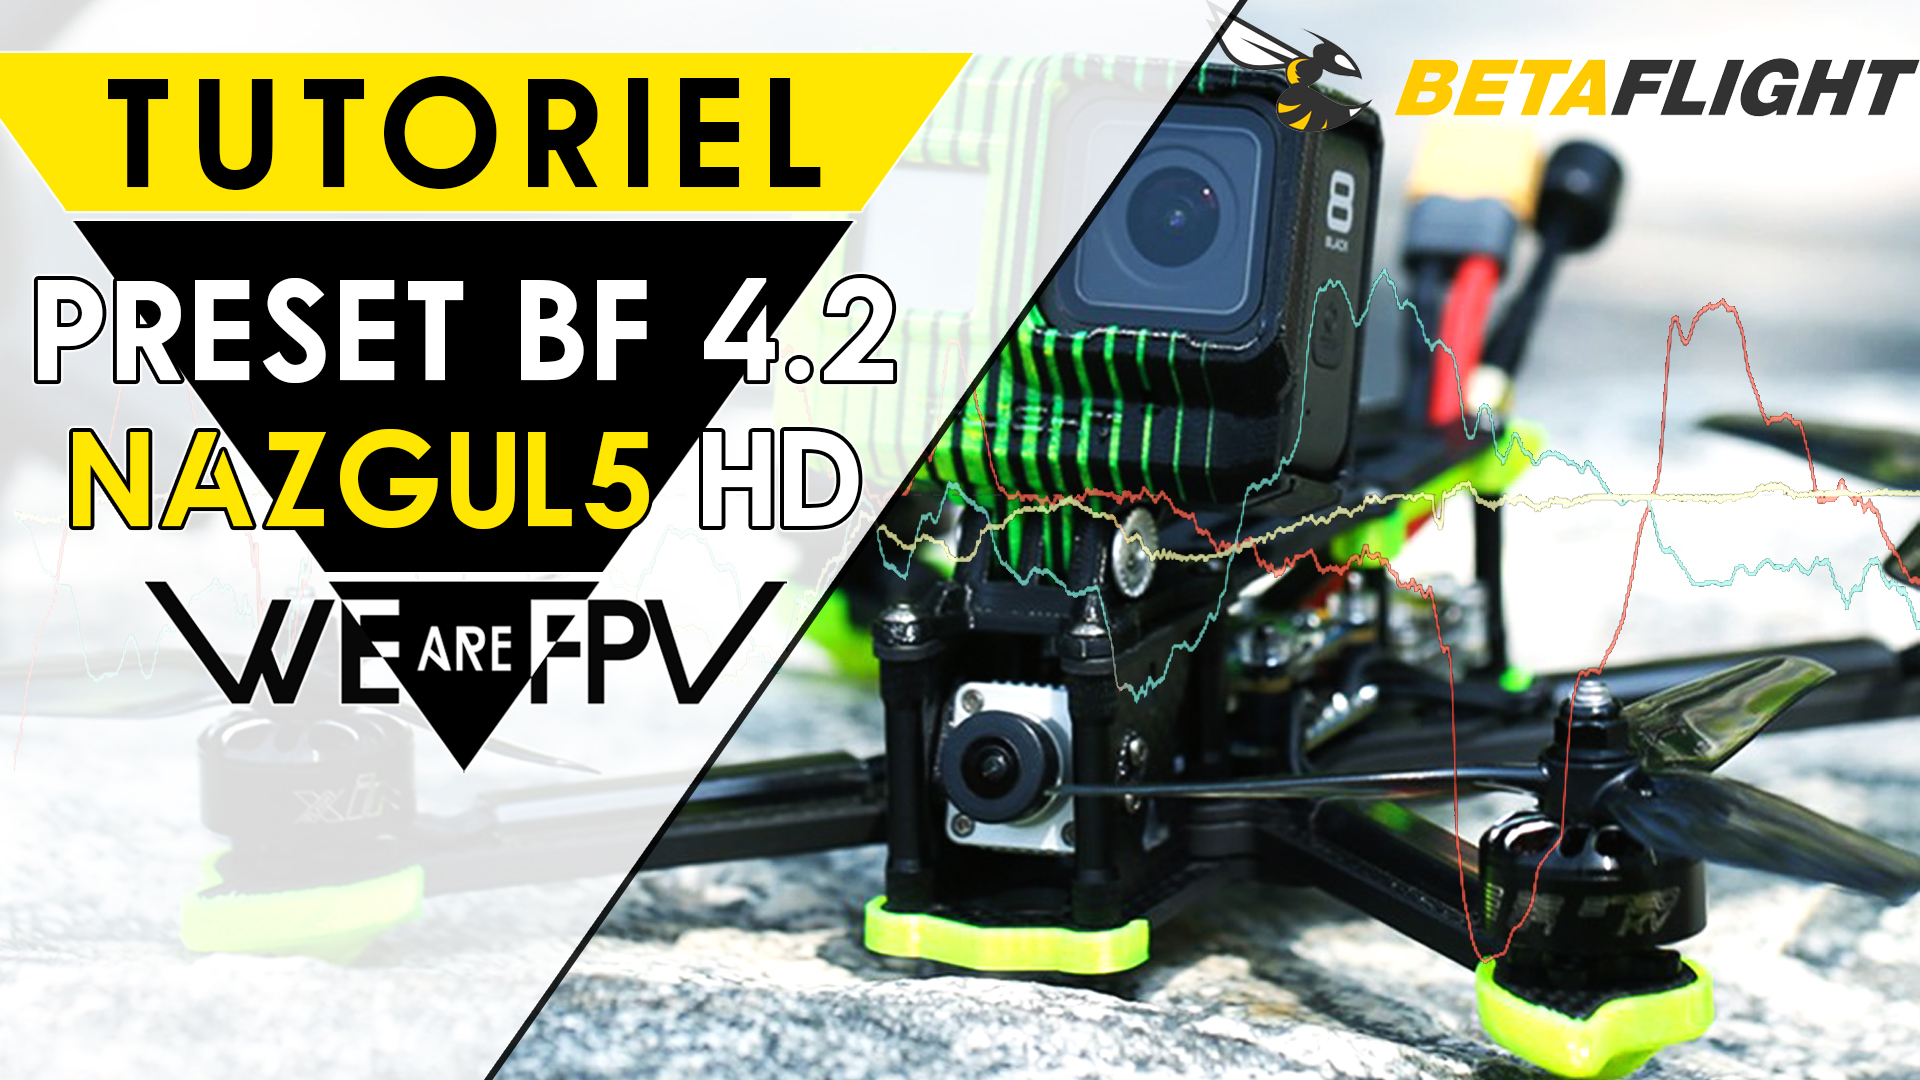 Preset betaflight nazgul5 hd v2 pid filters rates